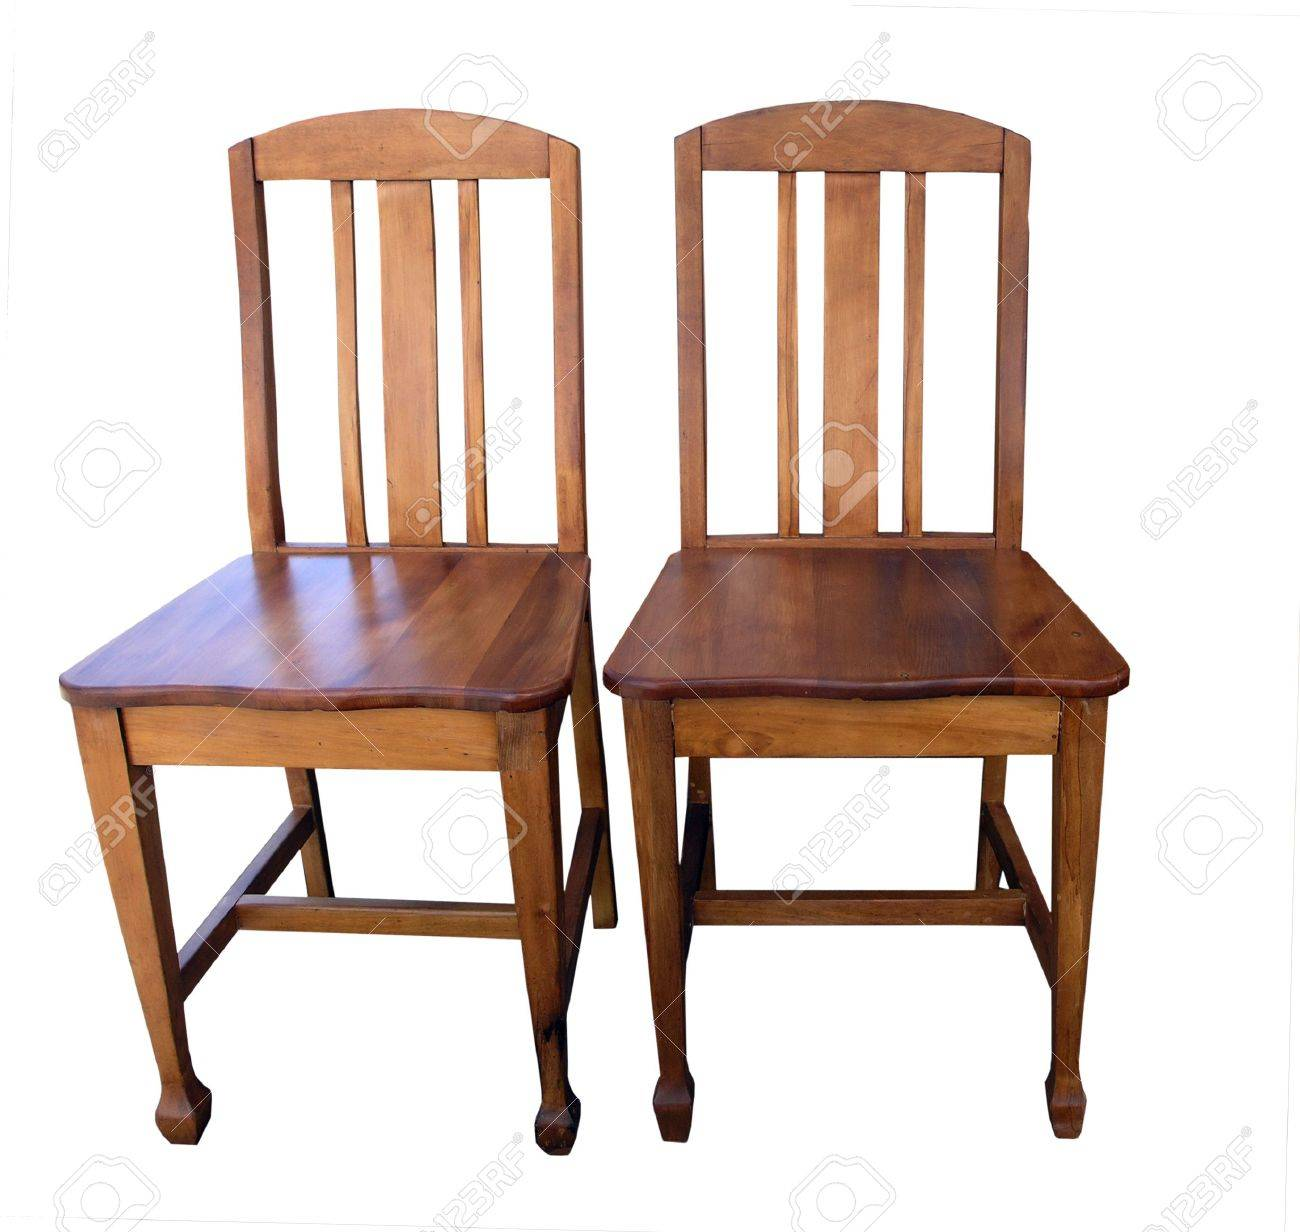 Antique wooden chair - Two Antique Wooden Chairs Stock Photo 2370926